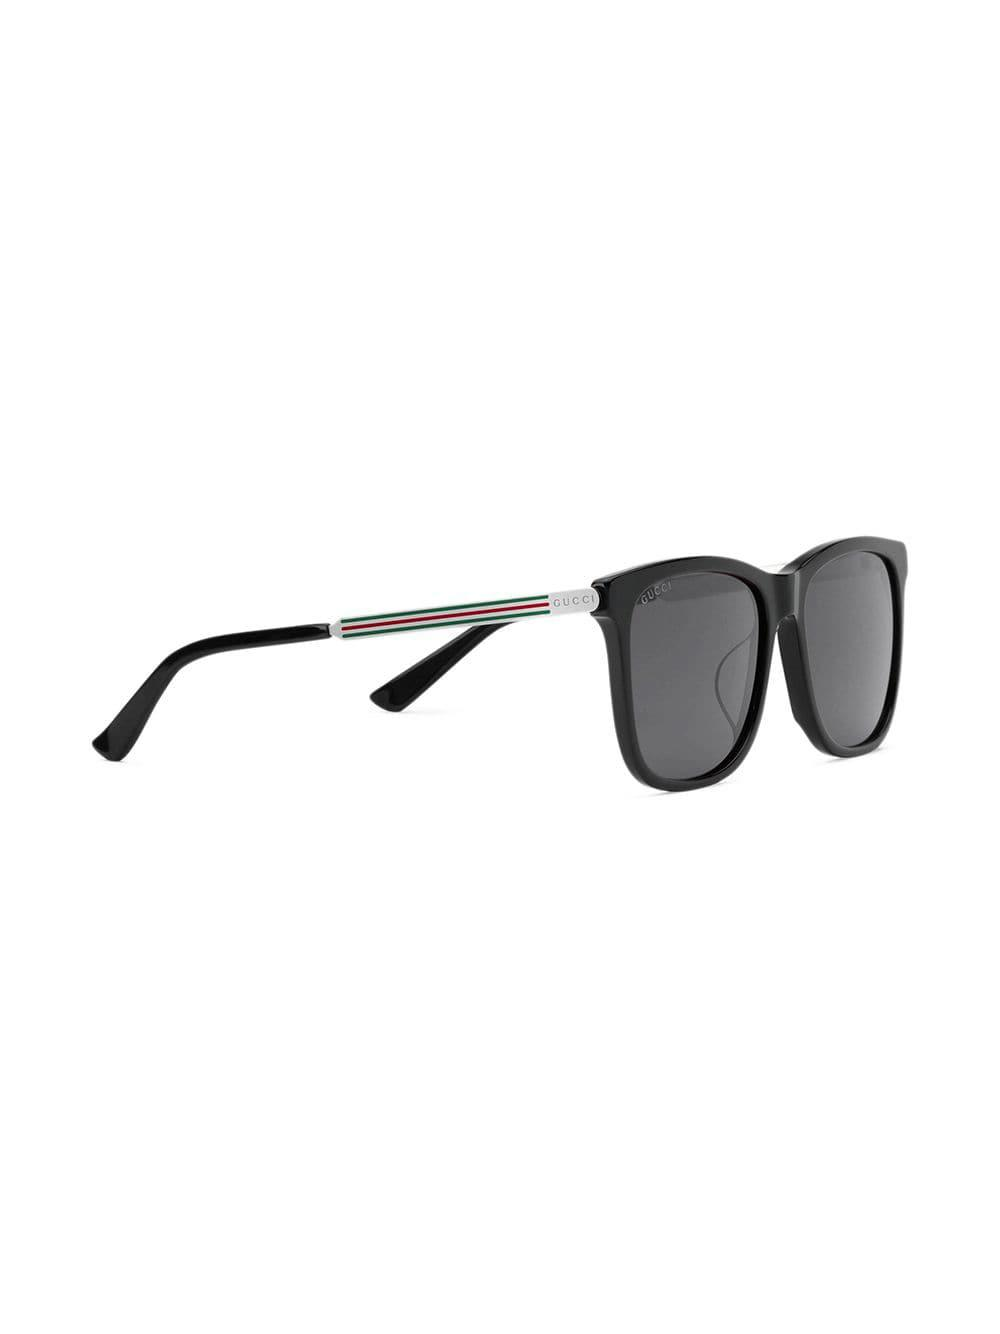 d3edf8bd097 Lyst - Gucci Square-frame Acetate Sunglasses in Black for Men